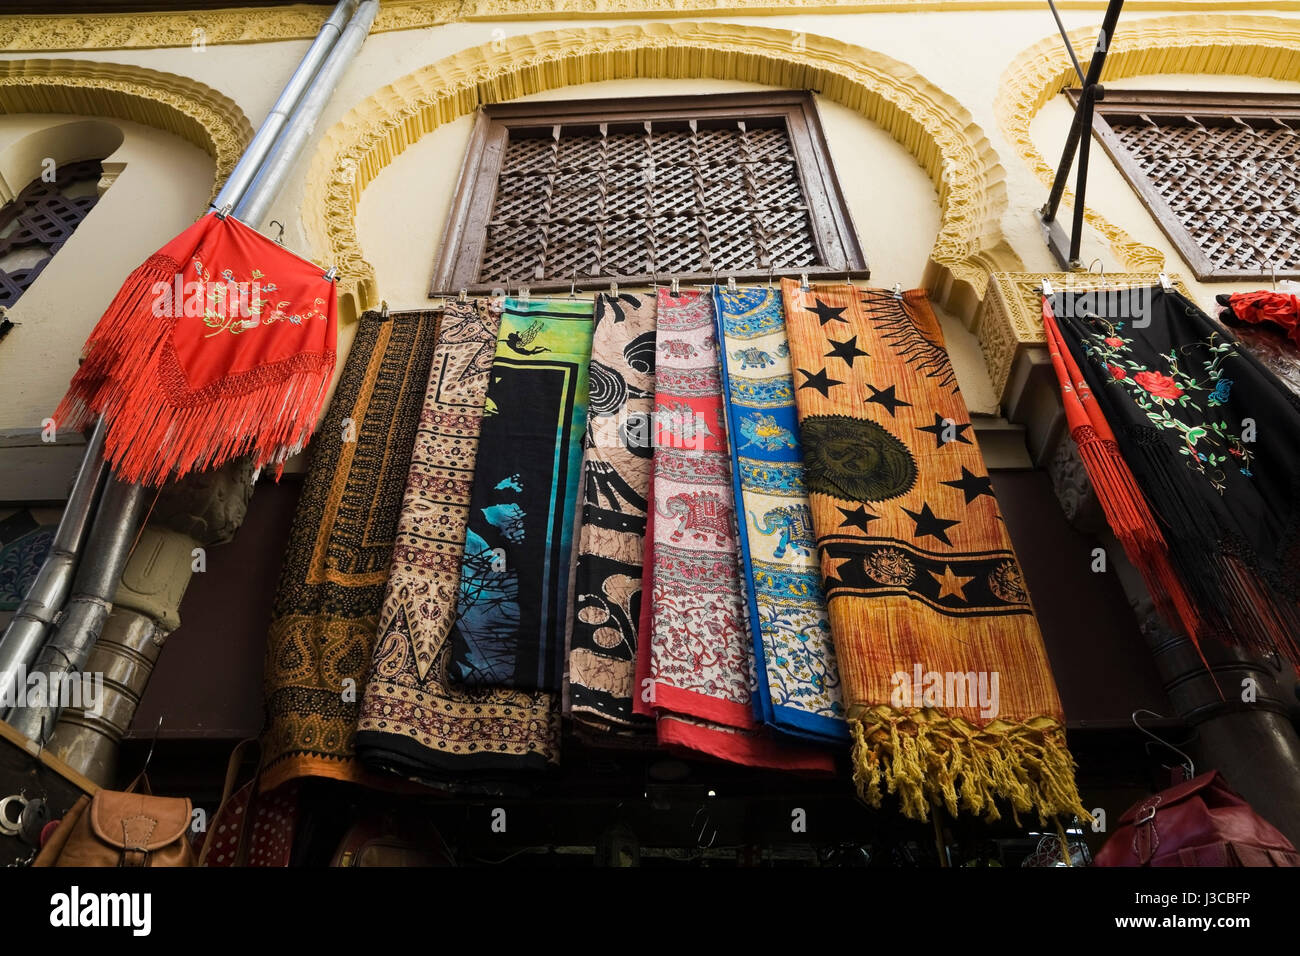 Hanging tablecloths at boutique at an Arab souk in Granada, Spain, Europe. - Stock Image